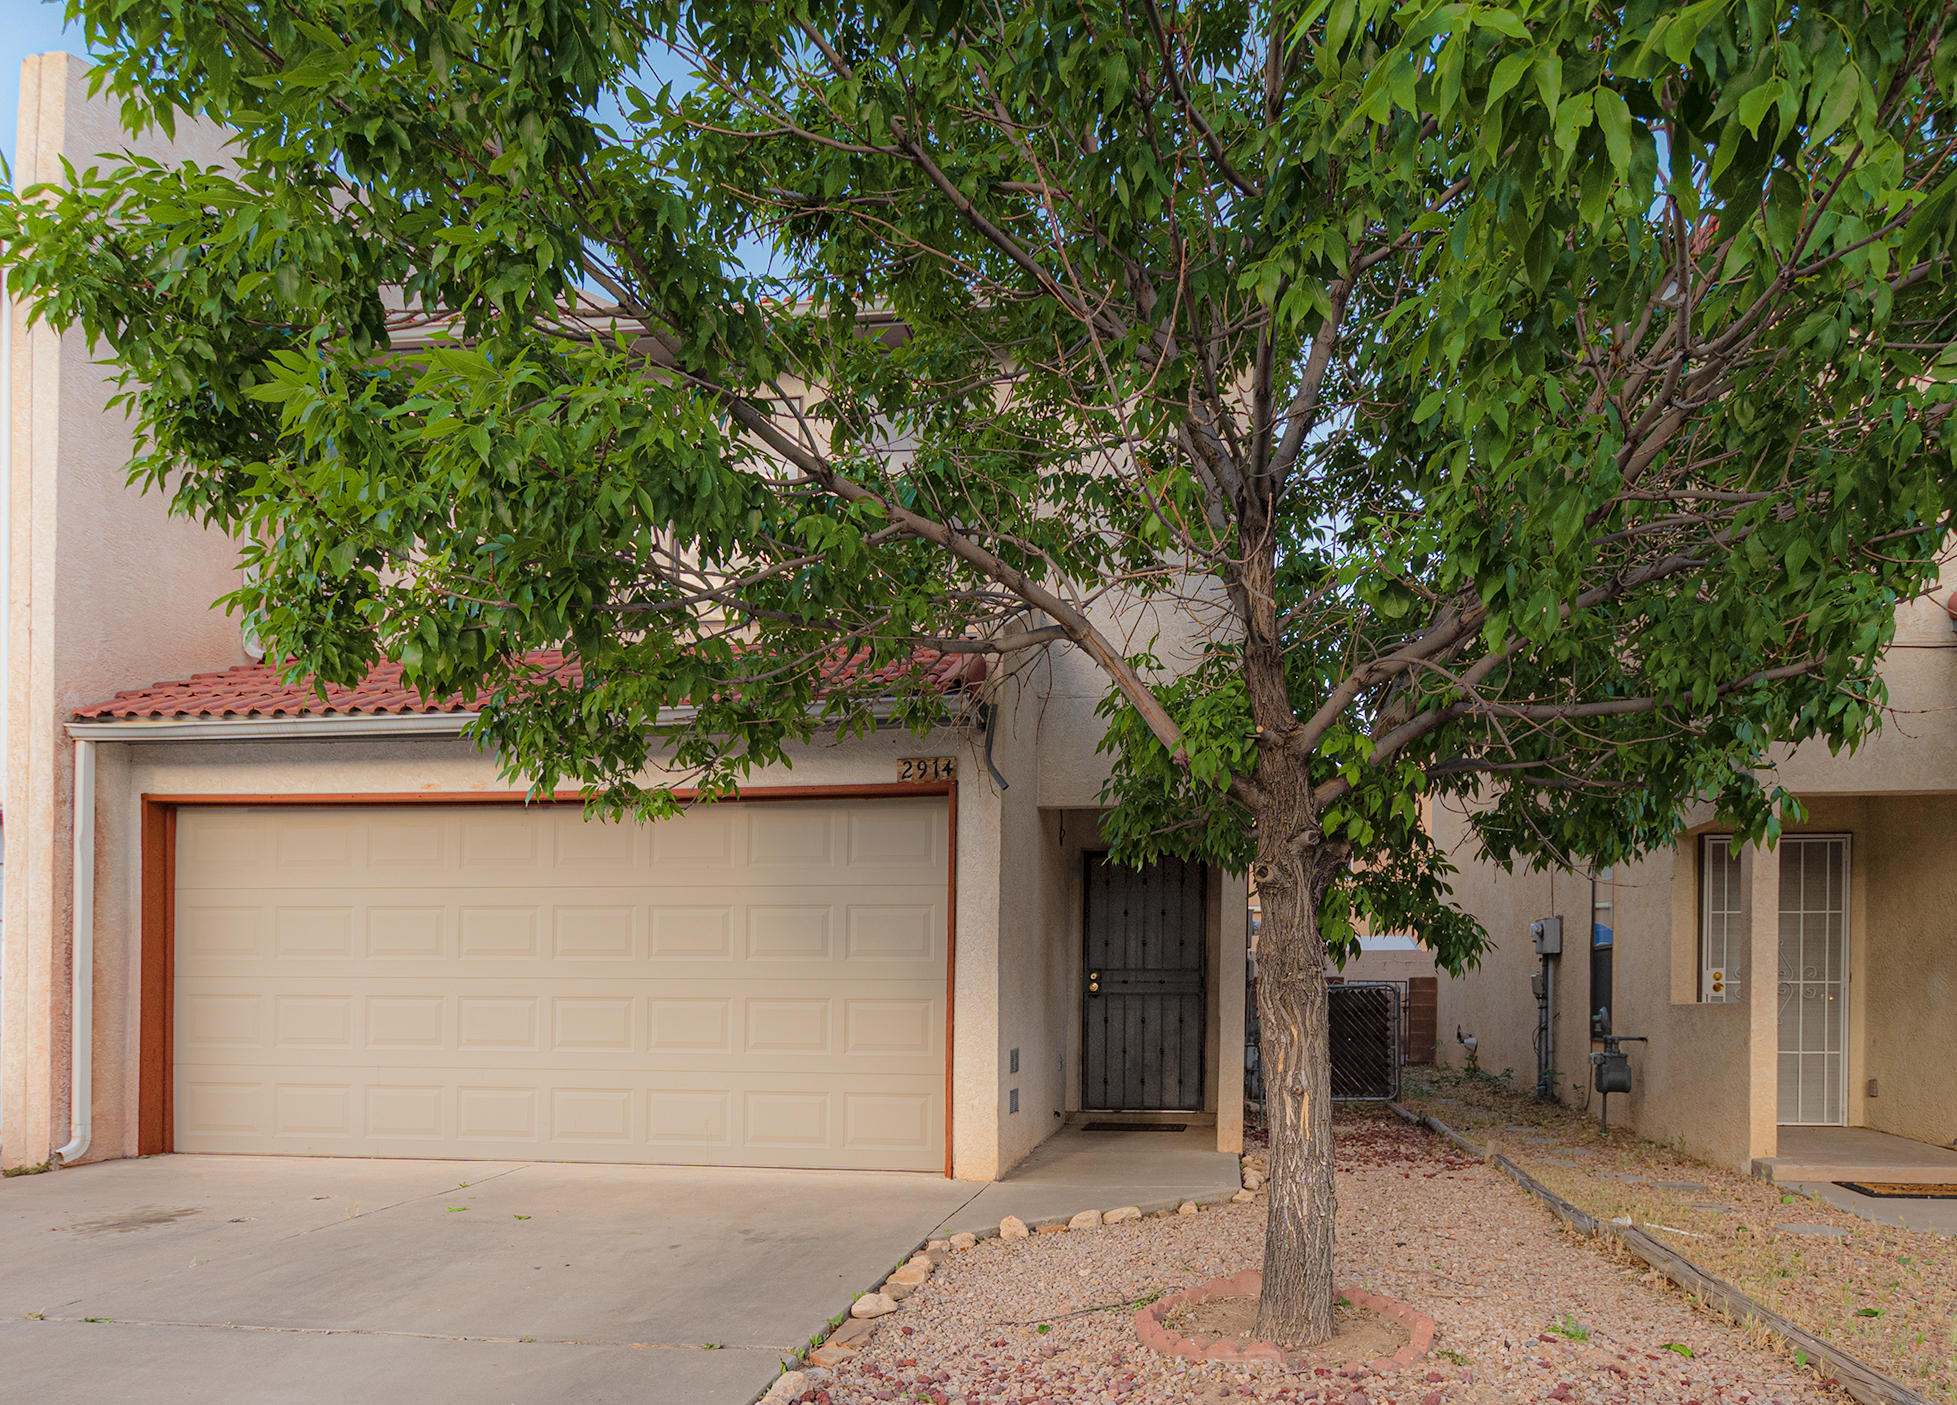 Affordable  three bedroom, two and a half bath townhome in a great location, close to freeway, restaurants and shopping centers. Washer, Dryer, and Refrigerator convey as is. NO HOA. You must see to appreciate. Make appointment TODAY!!!